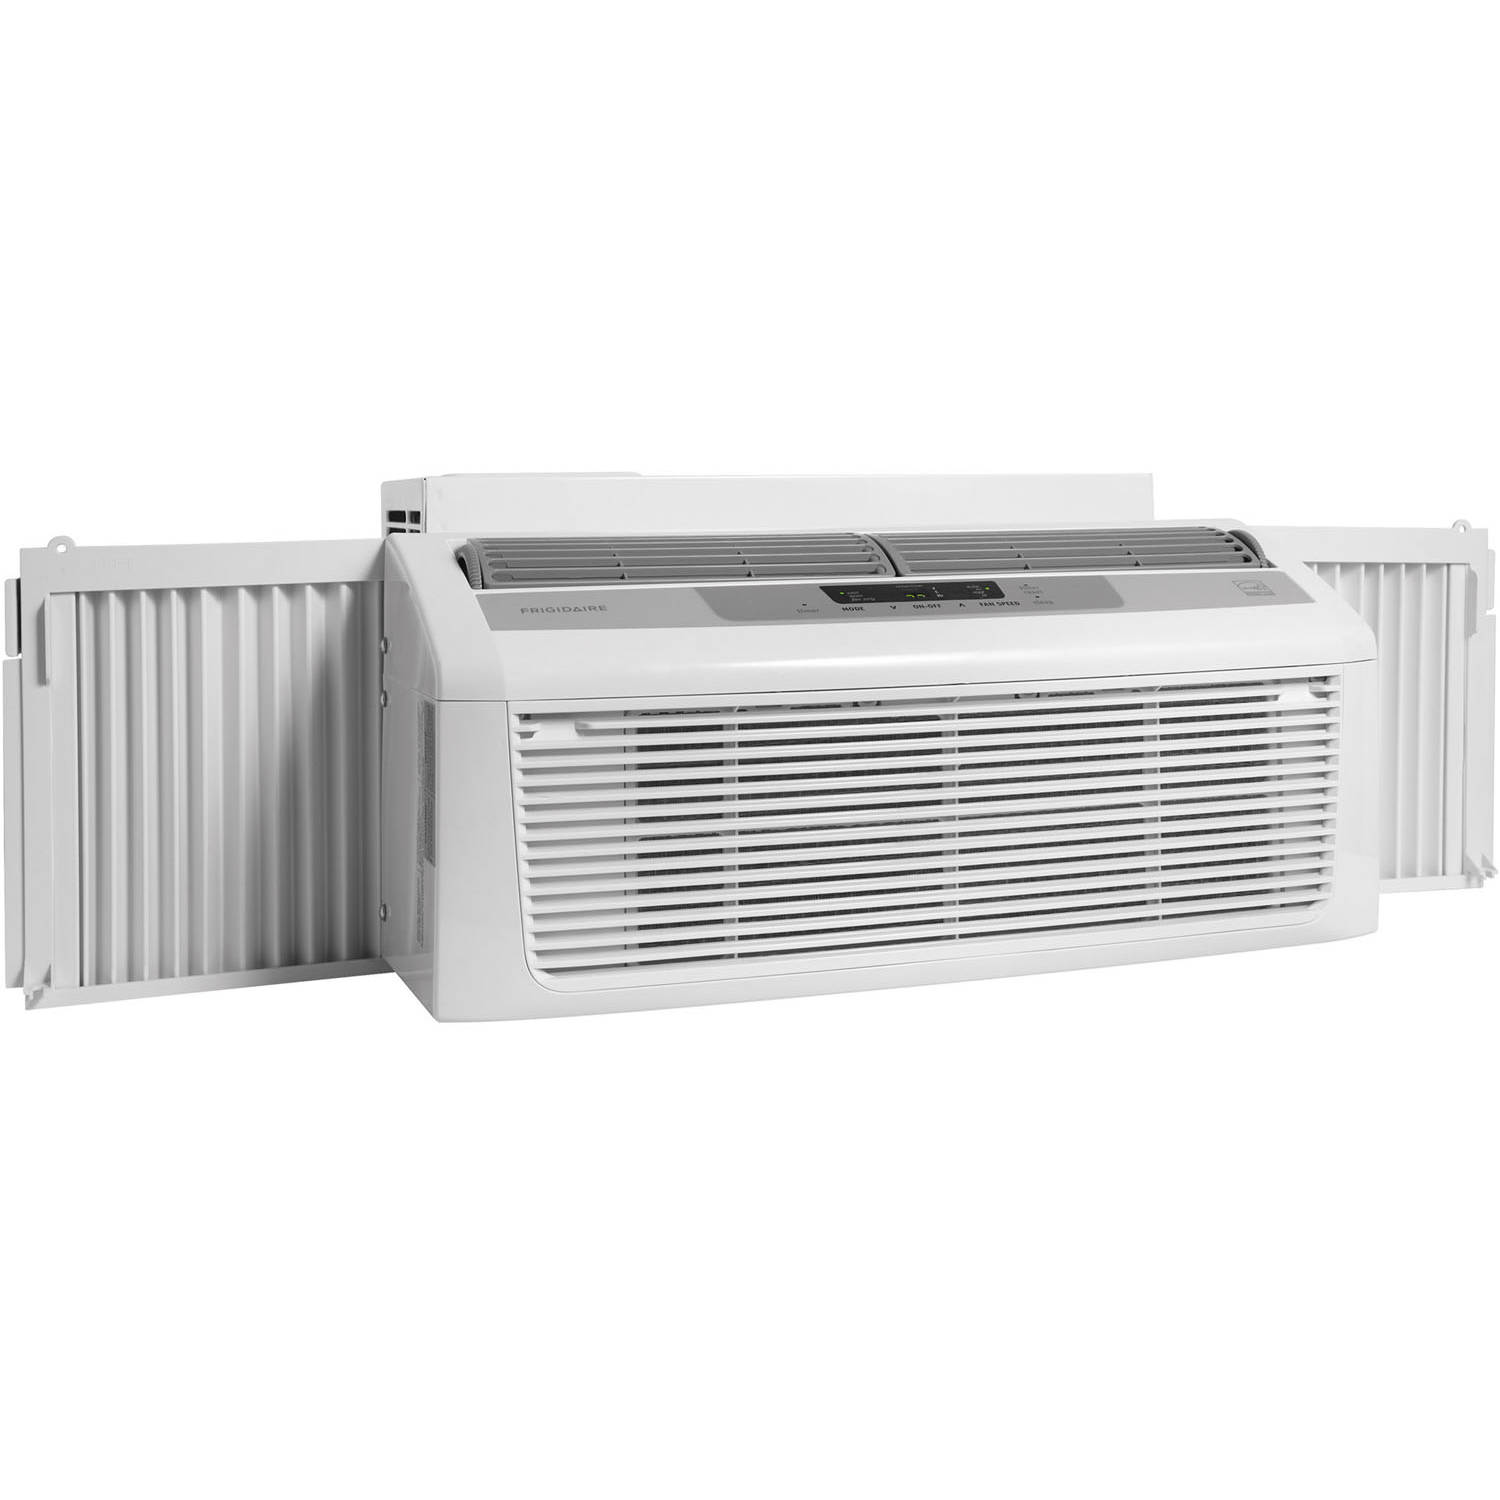 Basement window air conditioning units - Frigidaire Ffrl0633q1 Energy Efficient 6 000 Btu 115v Window Mounted Low Profile Air Conditioner With Full Function Remote Control Walmart Com